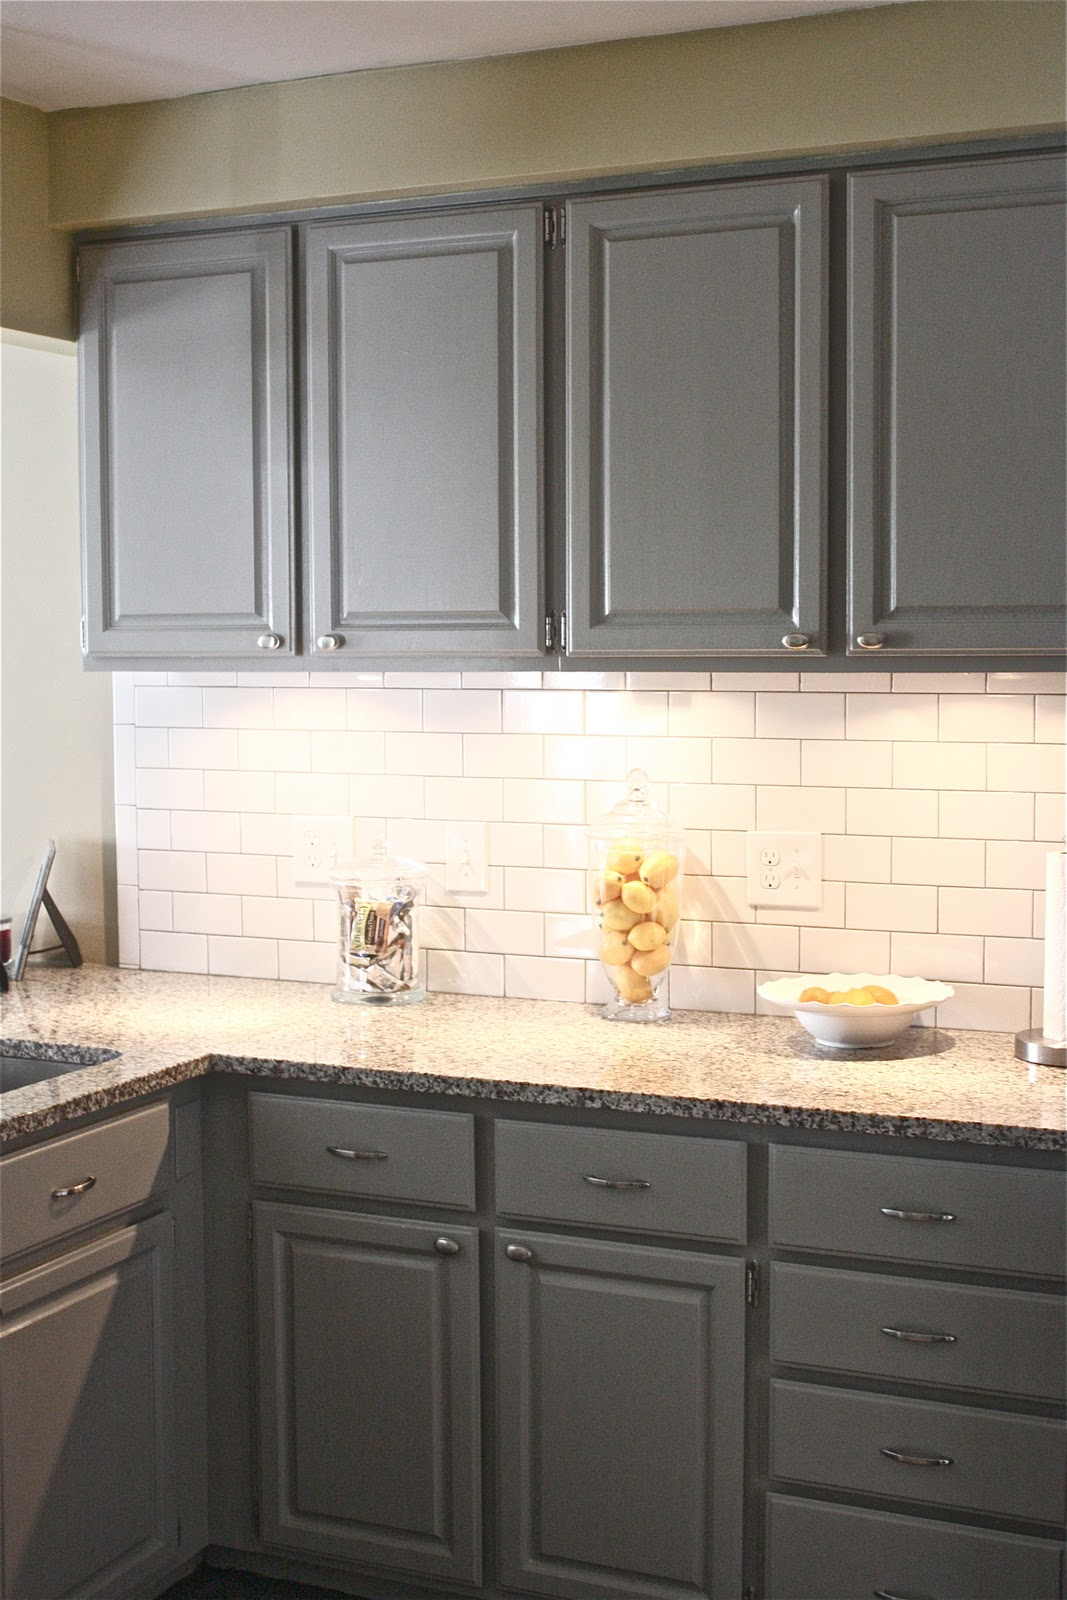 Black kitchen cabinets and cream floor tiles best home for White kitchen cabinets with tile floor